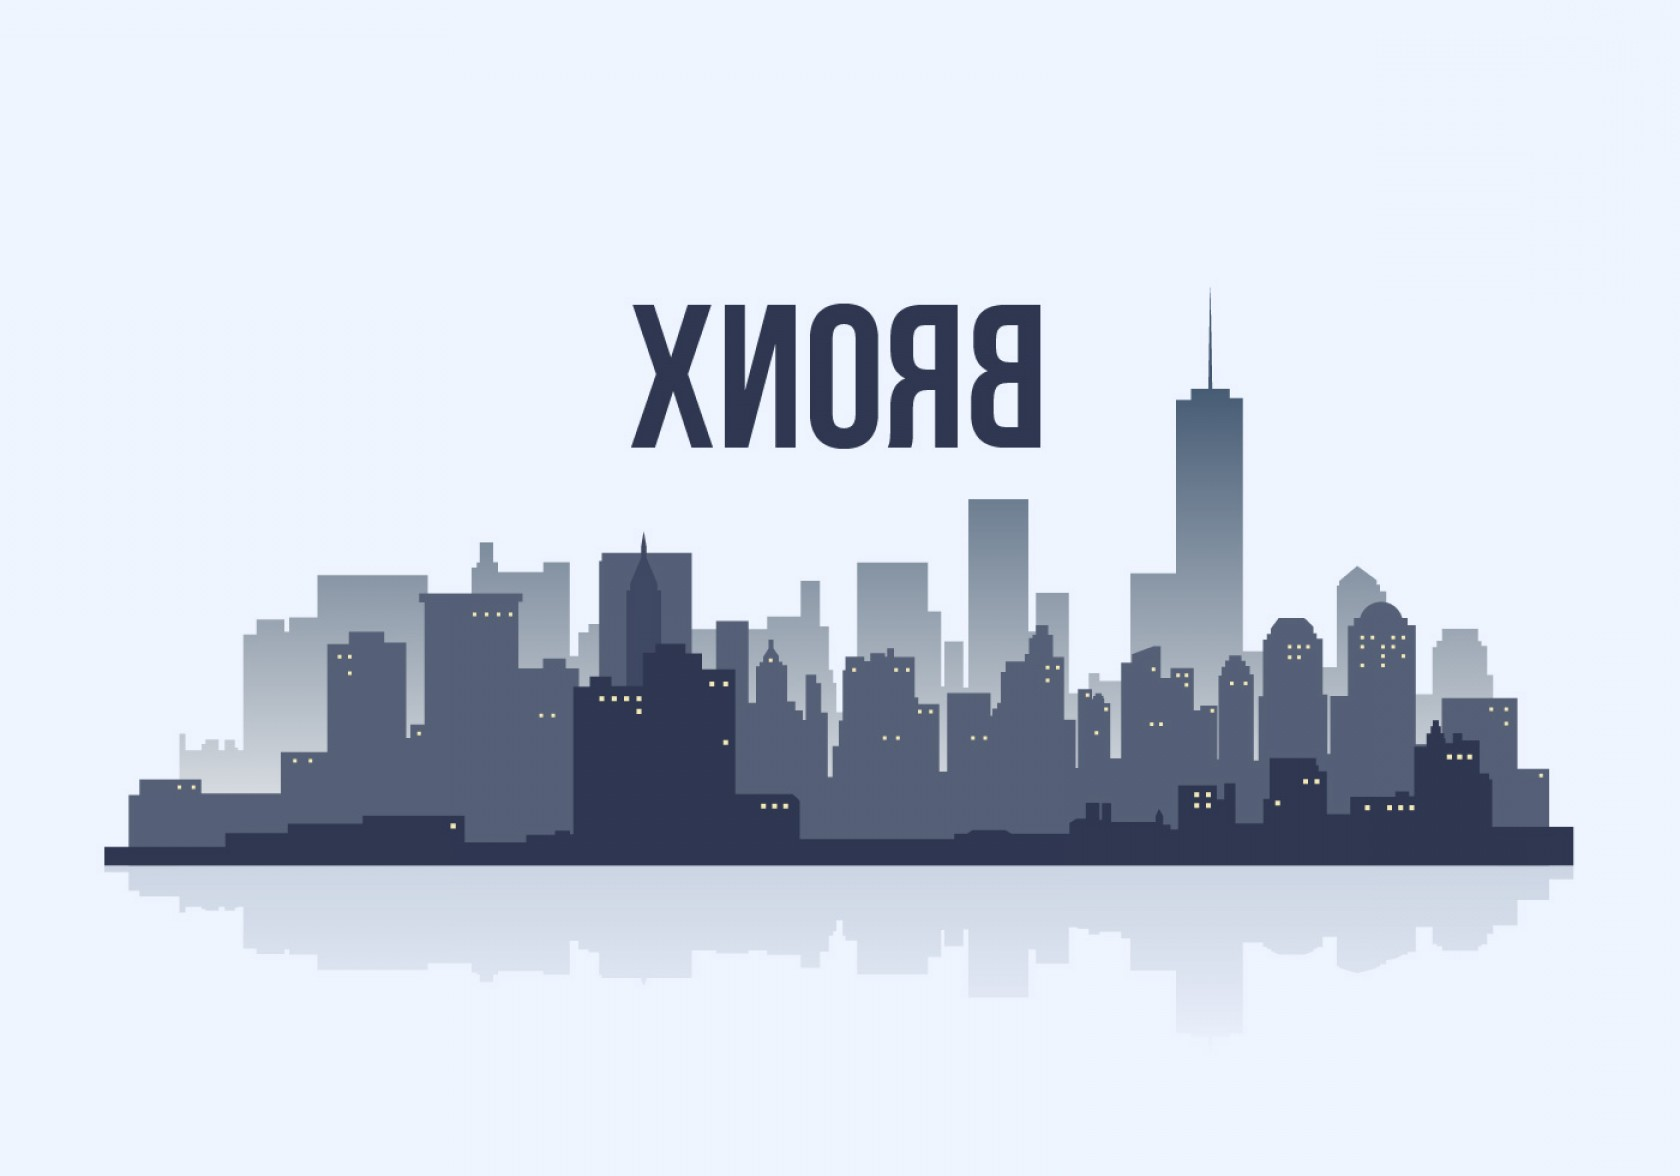 Wicked Boston Skyline Silhouette Vector: Bronx Stadt Skyline Silhouette Vektor Illustration